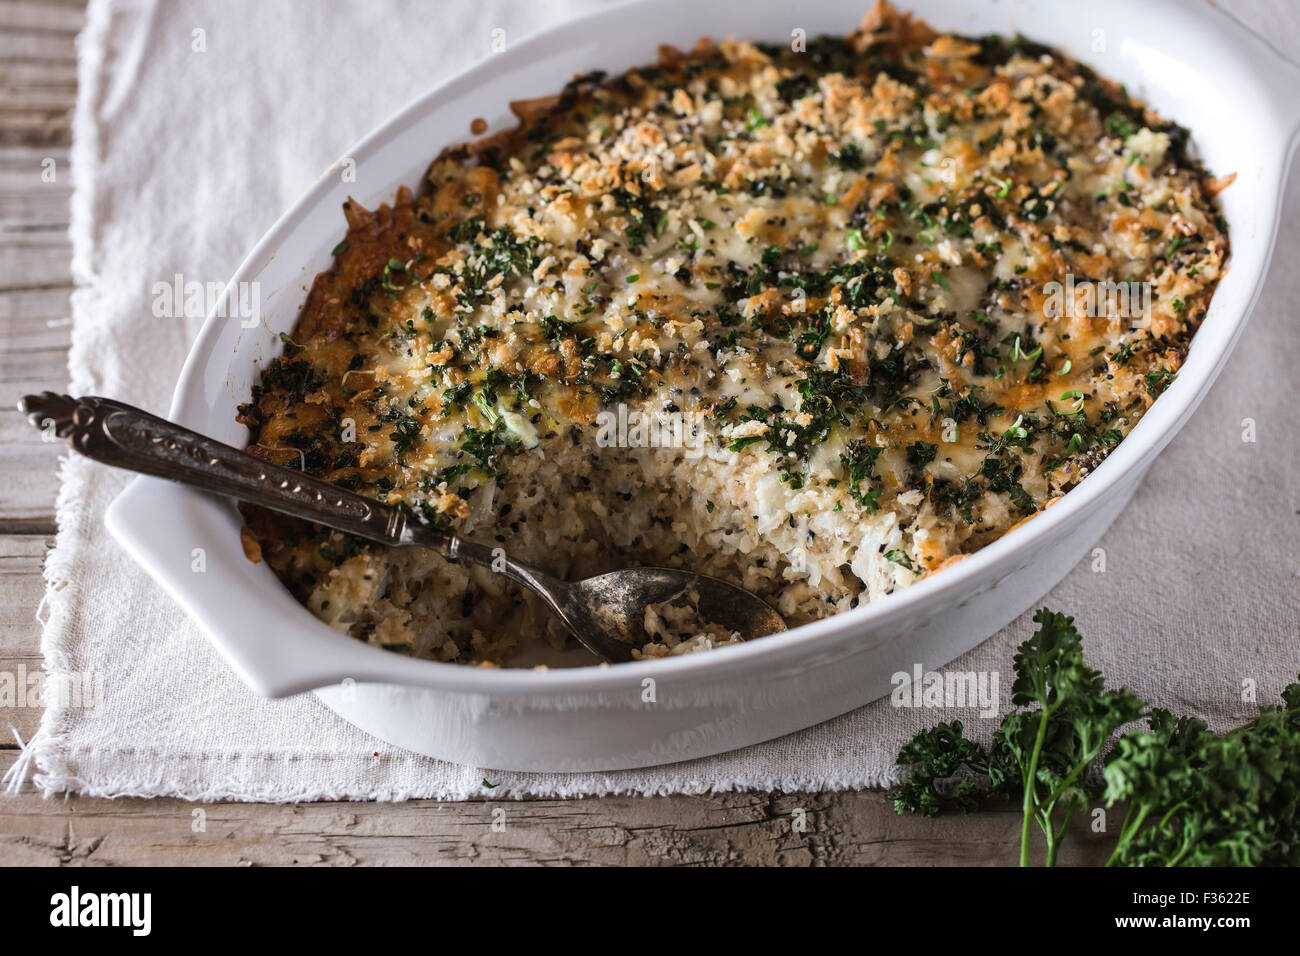 A Spicy Cauliflower Gratin with Crunchy Topping dish is displayed on a farm-style board and photographed from the - Stock Image